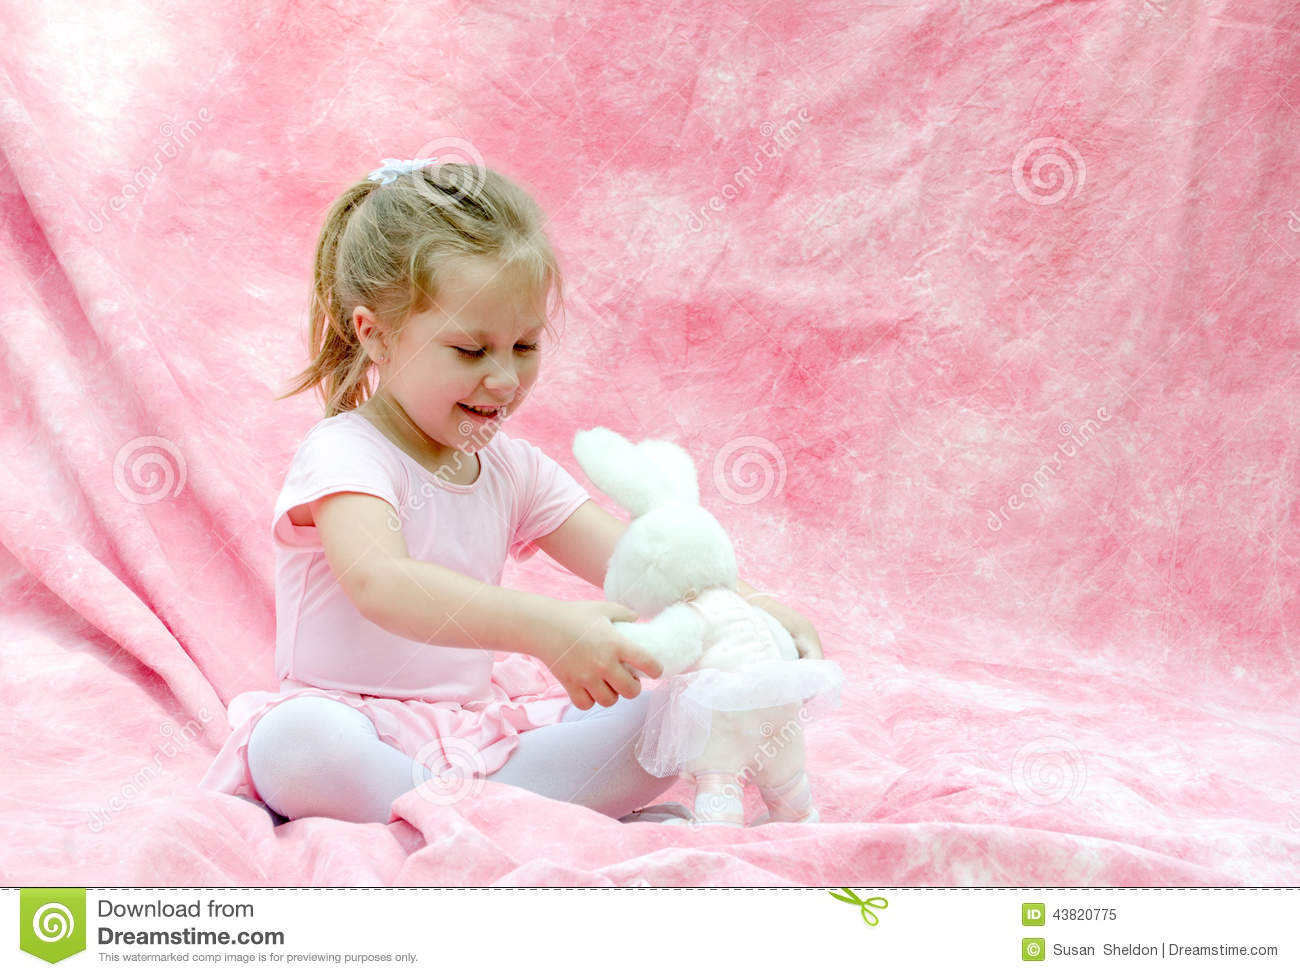 Child with toy ballerina bunny